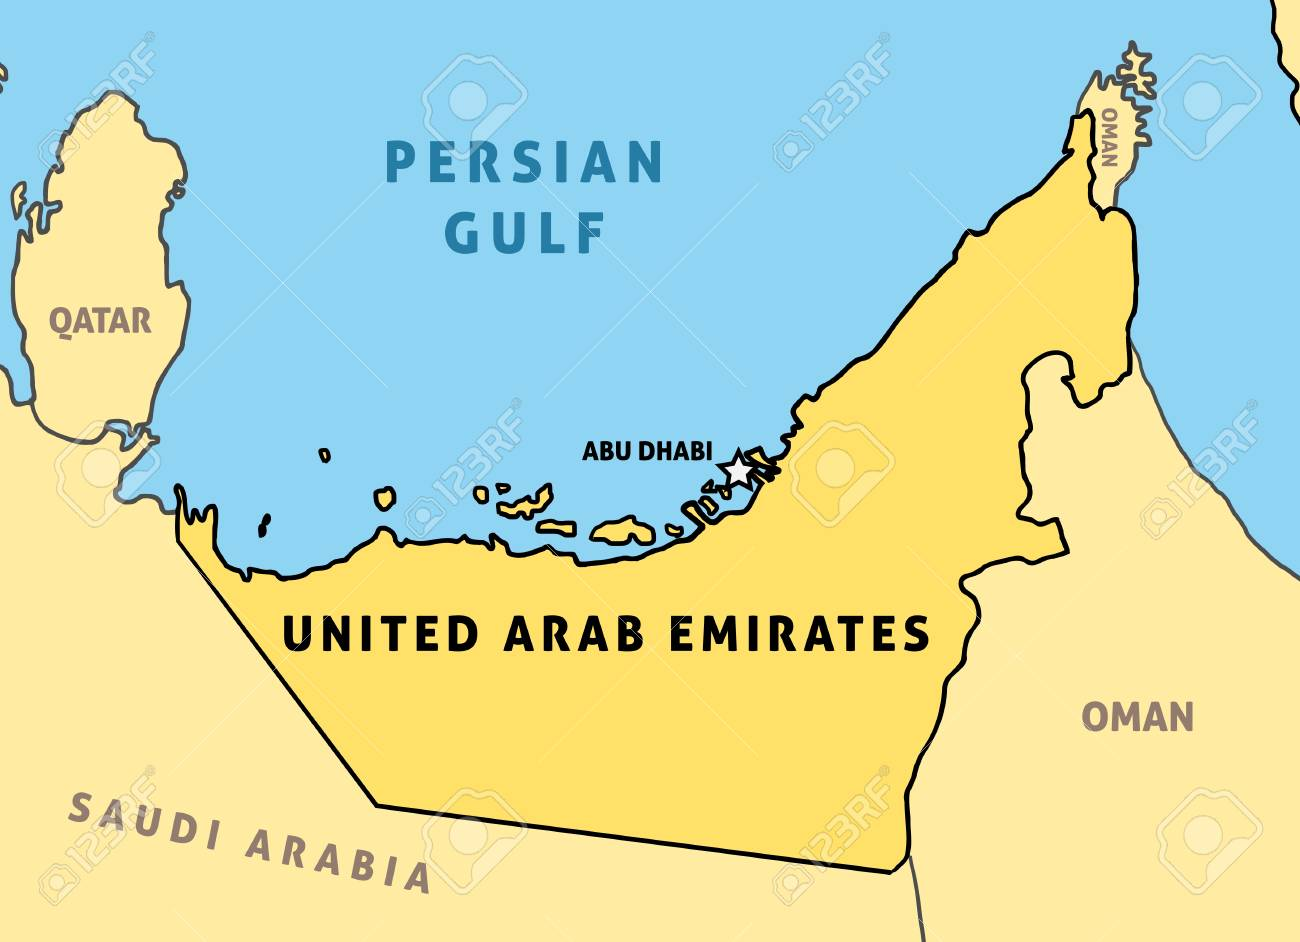 United Arab Emirates (UAE) map. Outline vector country map.